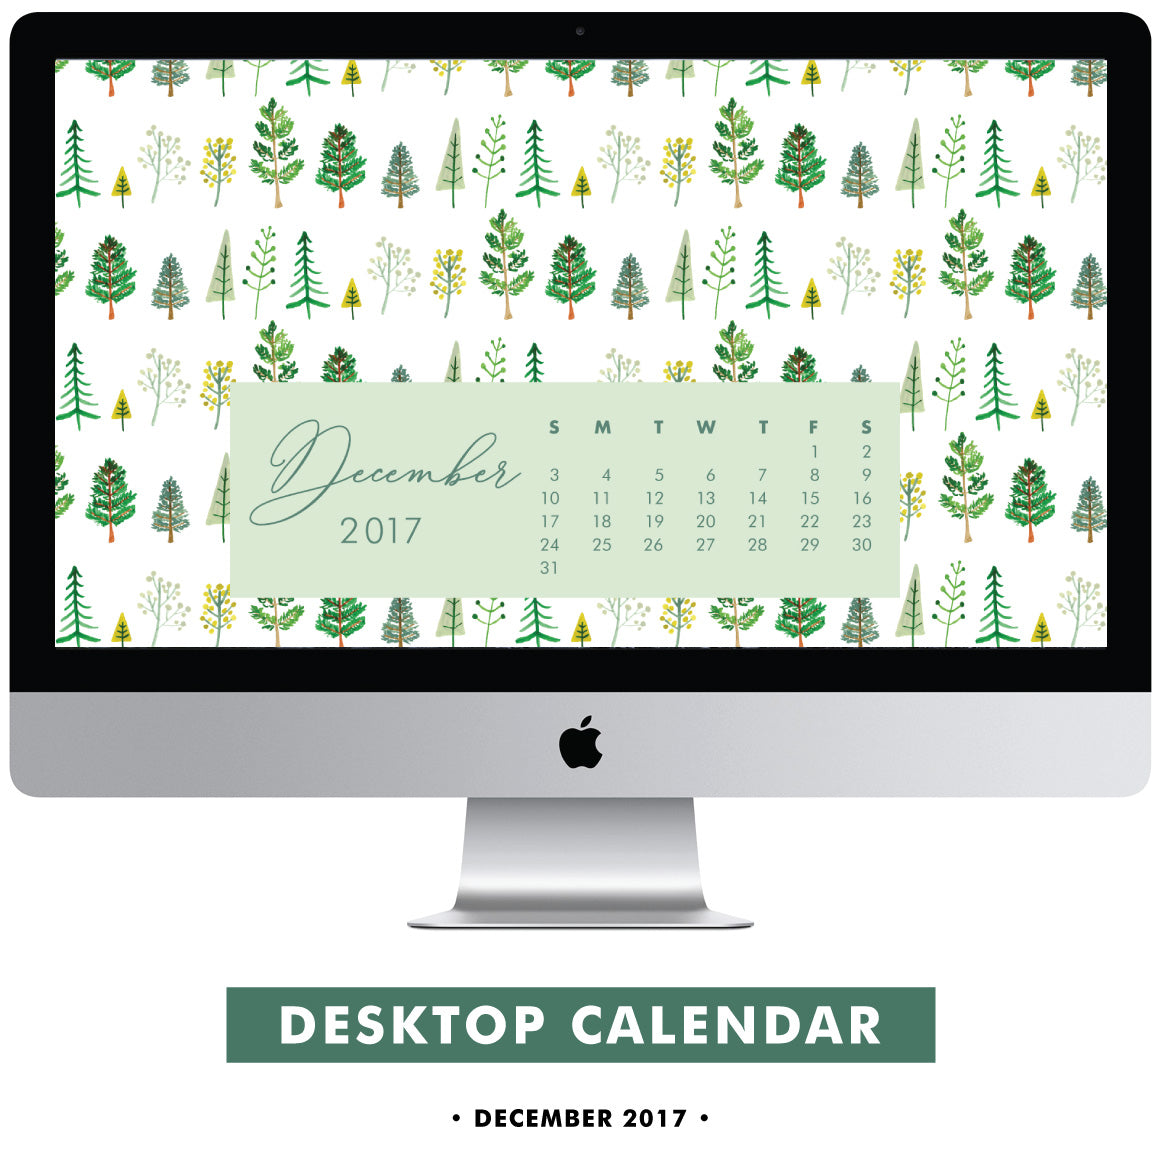 December 2017 Free Desktop Calendar Download by Erika Firm